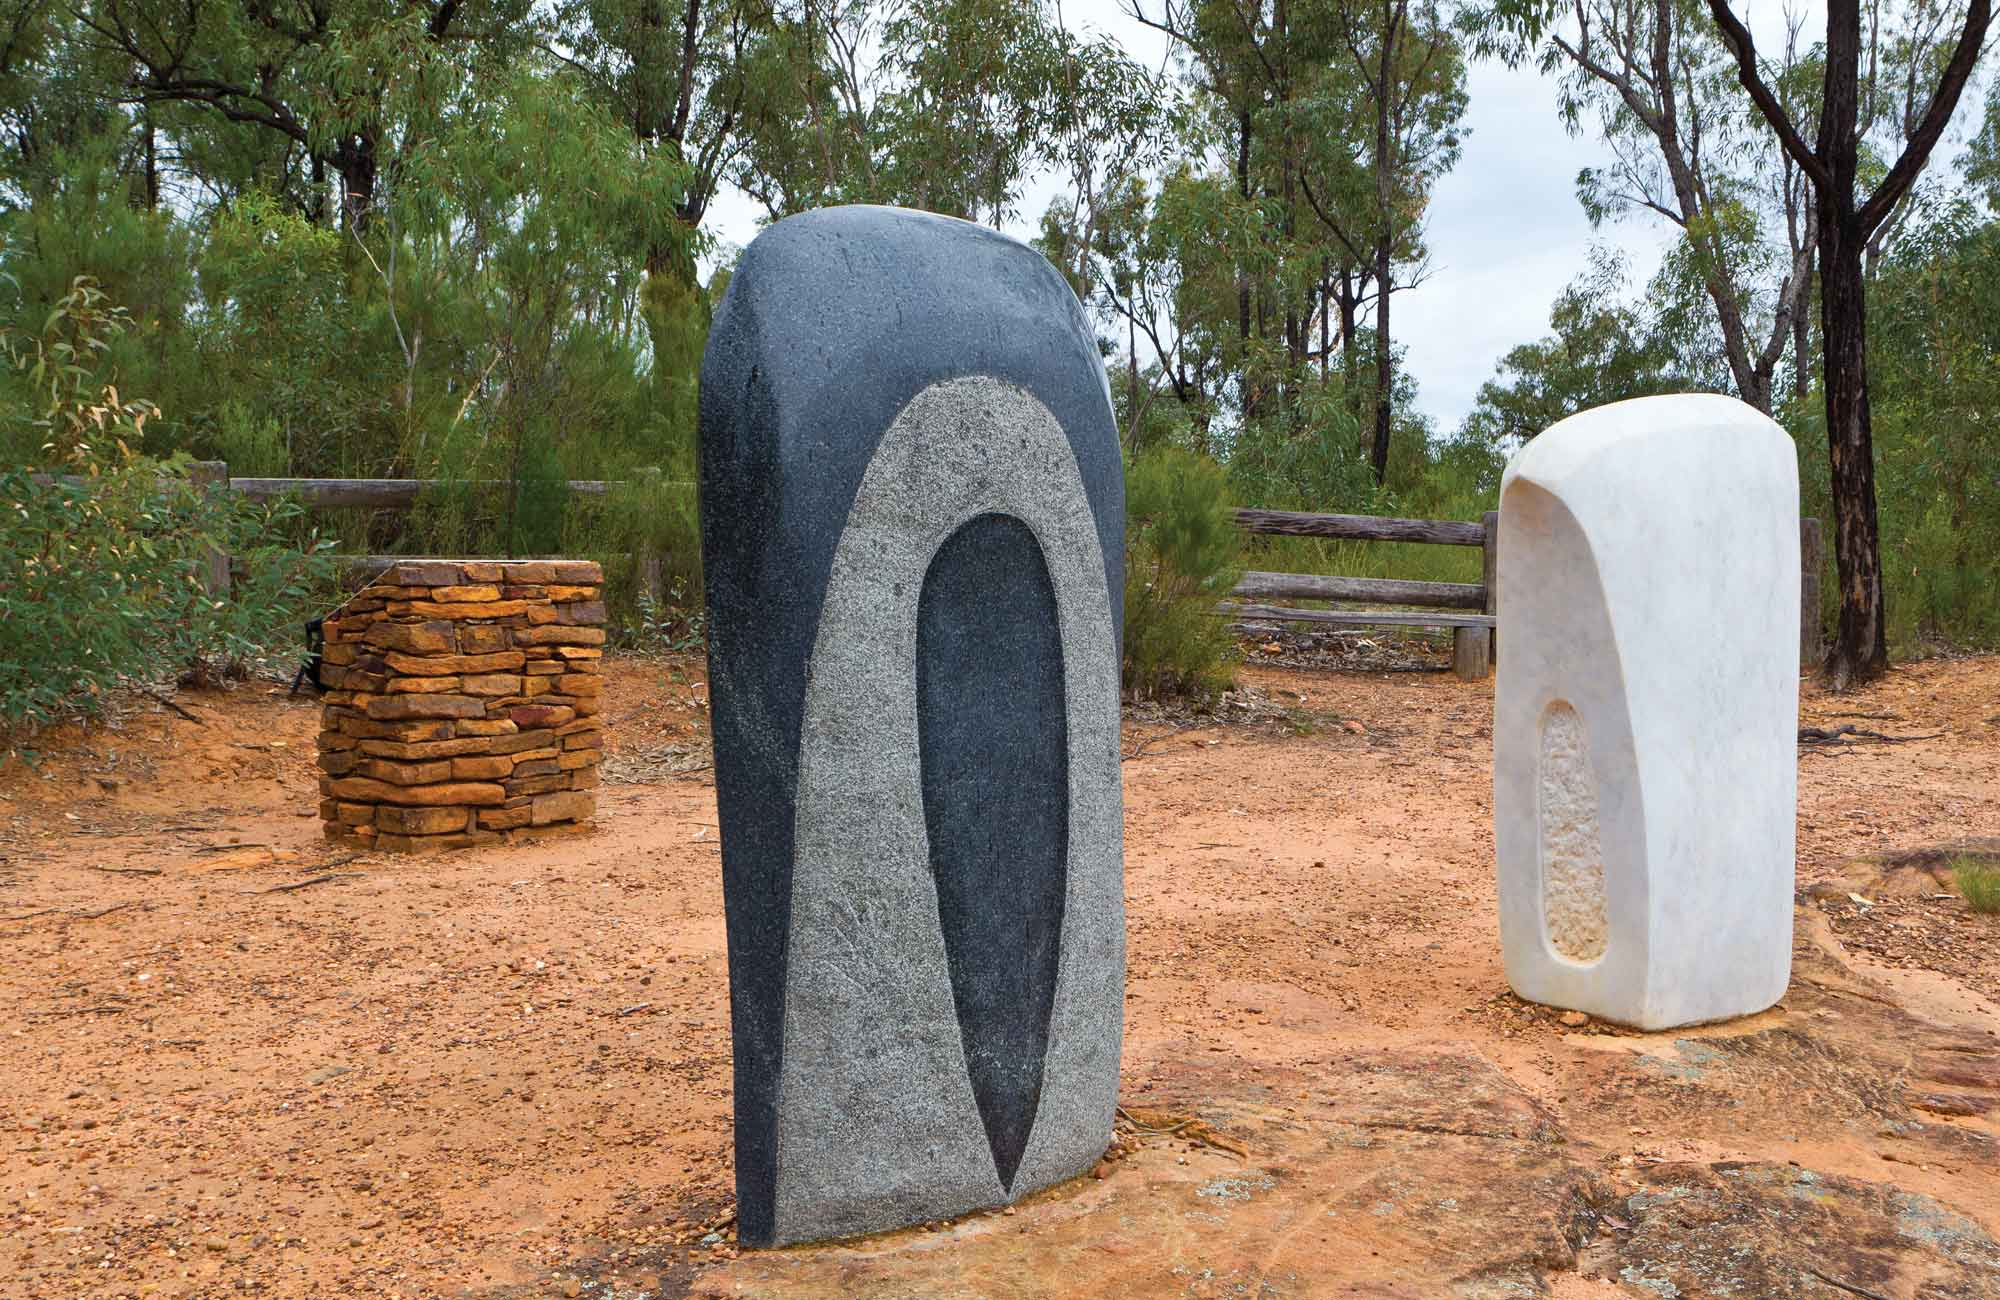 Sculptures in the Scrub, Pilliga National Park. Photo: Rob Cleary